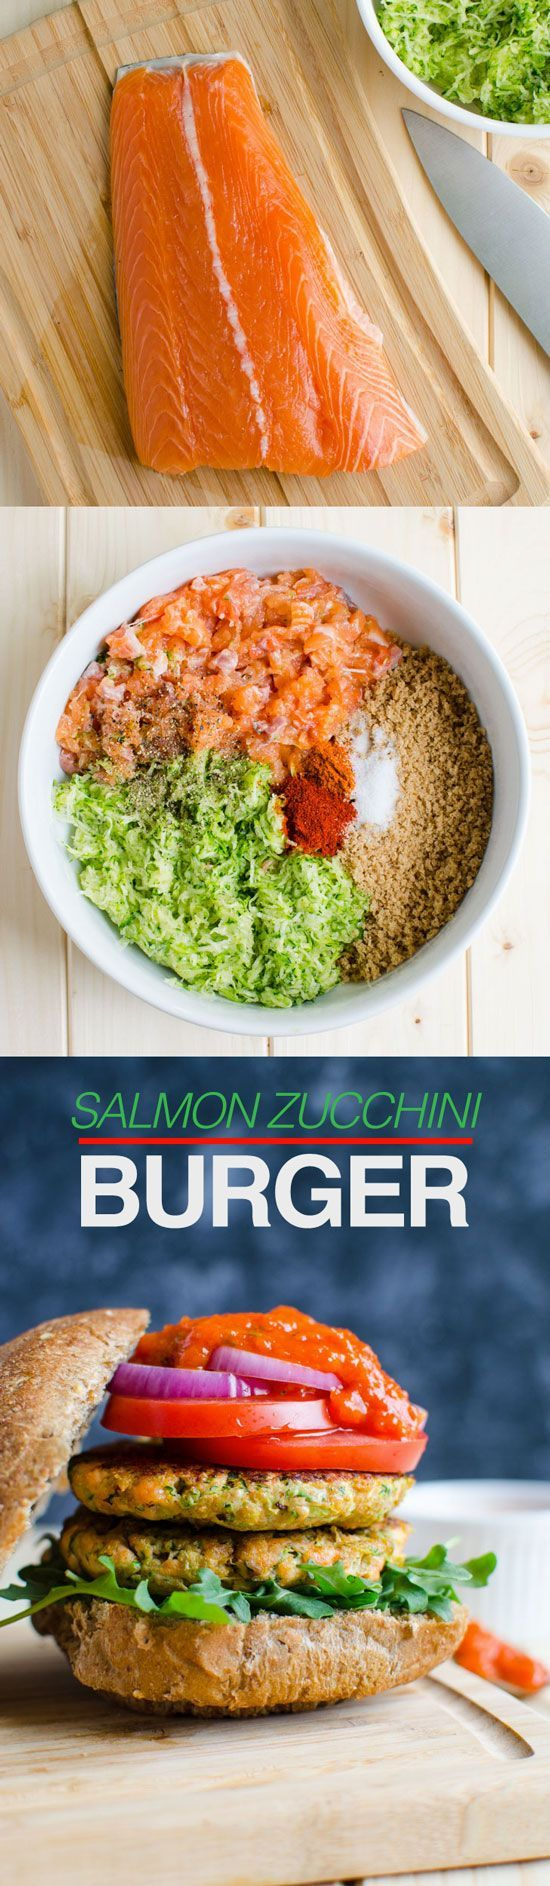 Healthy salmon burger prepared using all healthy ingredients such as fresh salmon, zucchini, egg white, whole wheat bread crumbs etc etc...